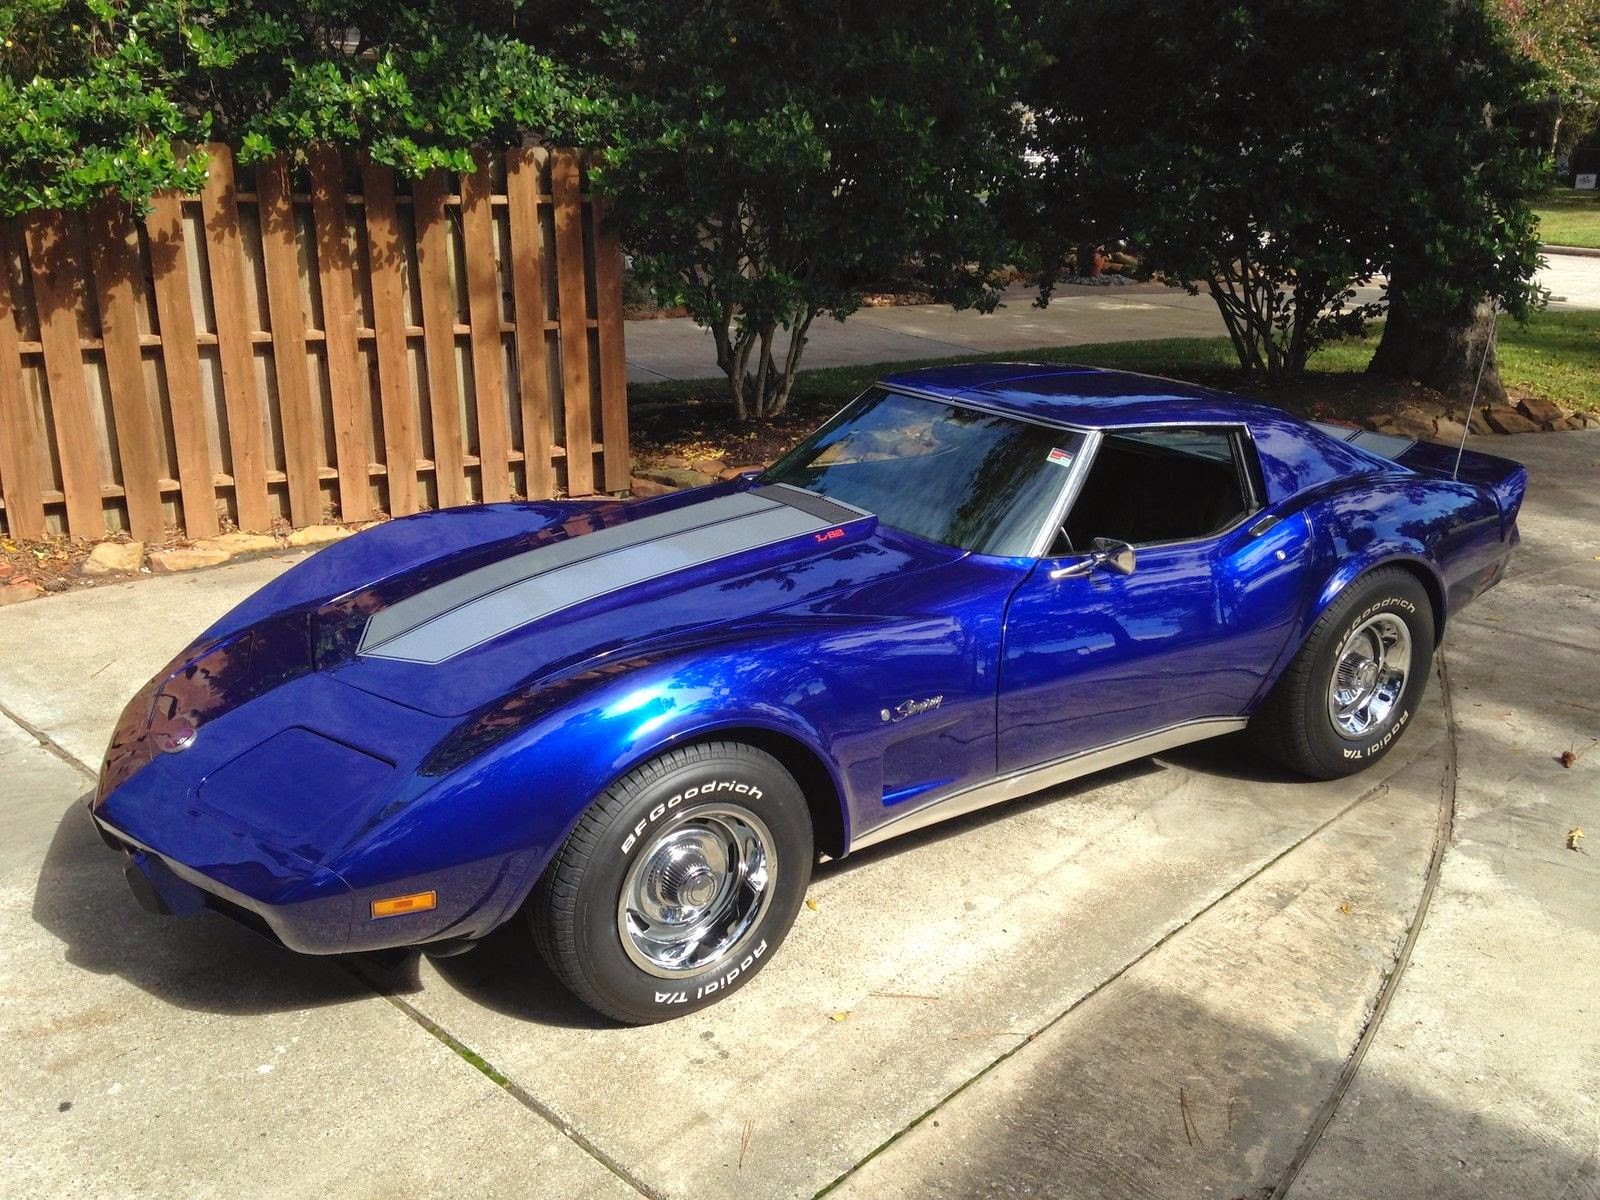 1975 Chevrolet Corvette Stingray Rare 4 Sd Transmission Manual Only 1047 Stingrays Produced In This Car Has Always Been A Best